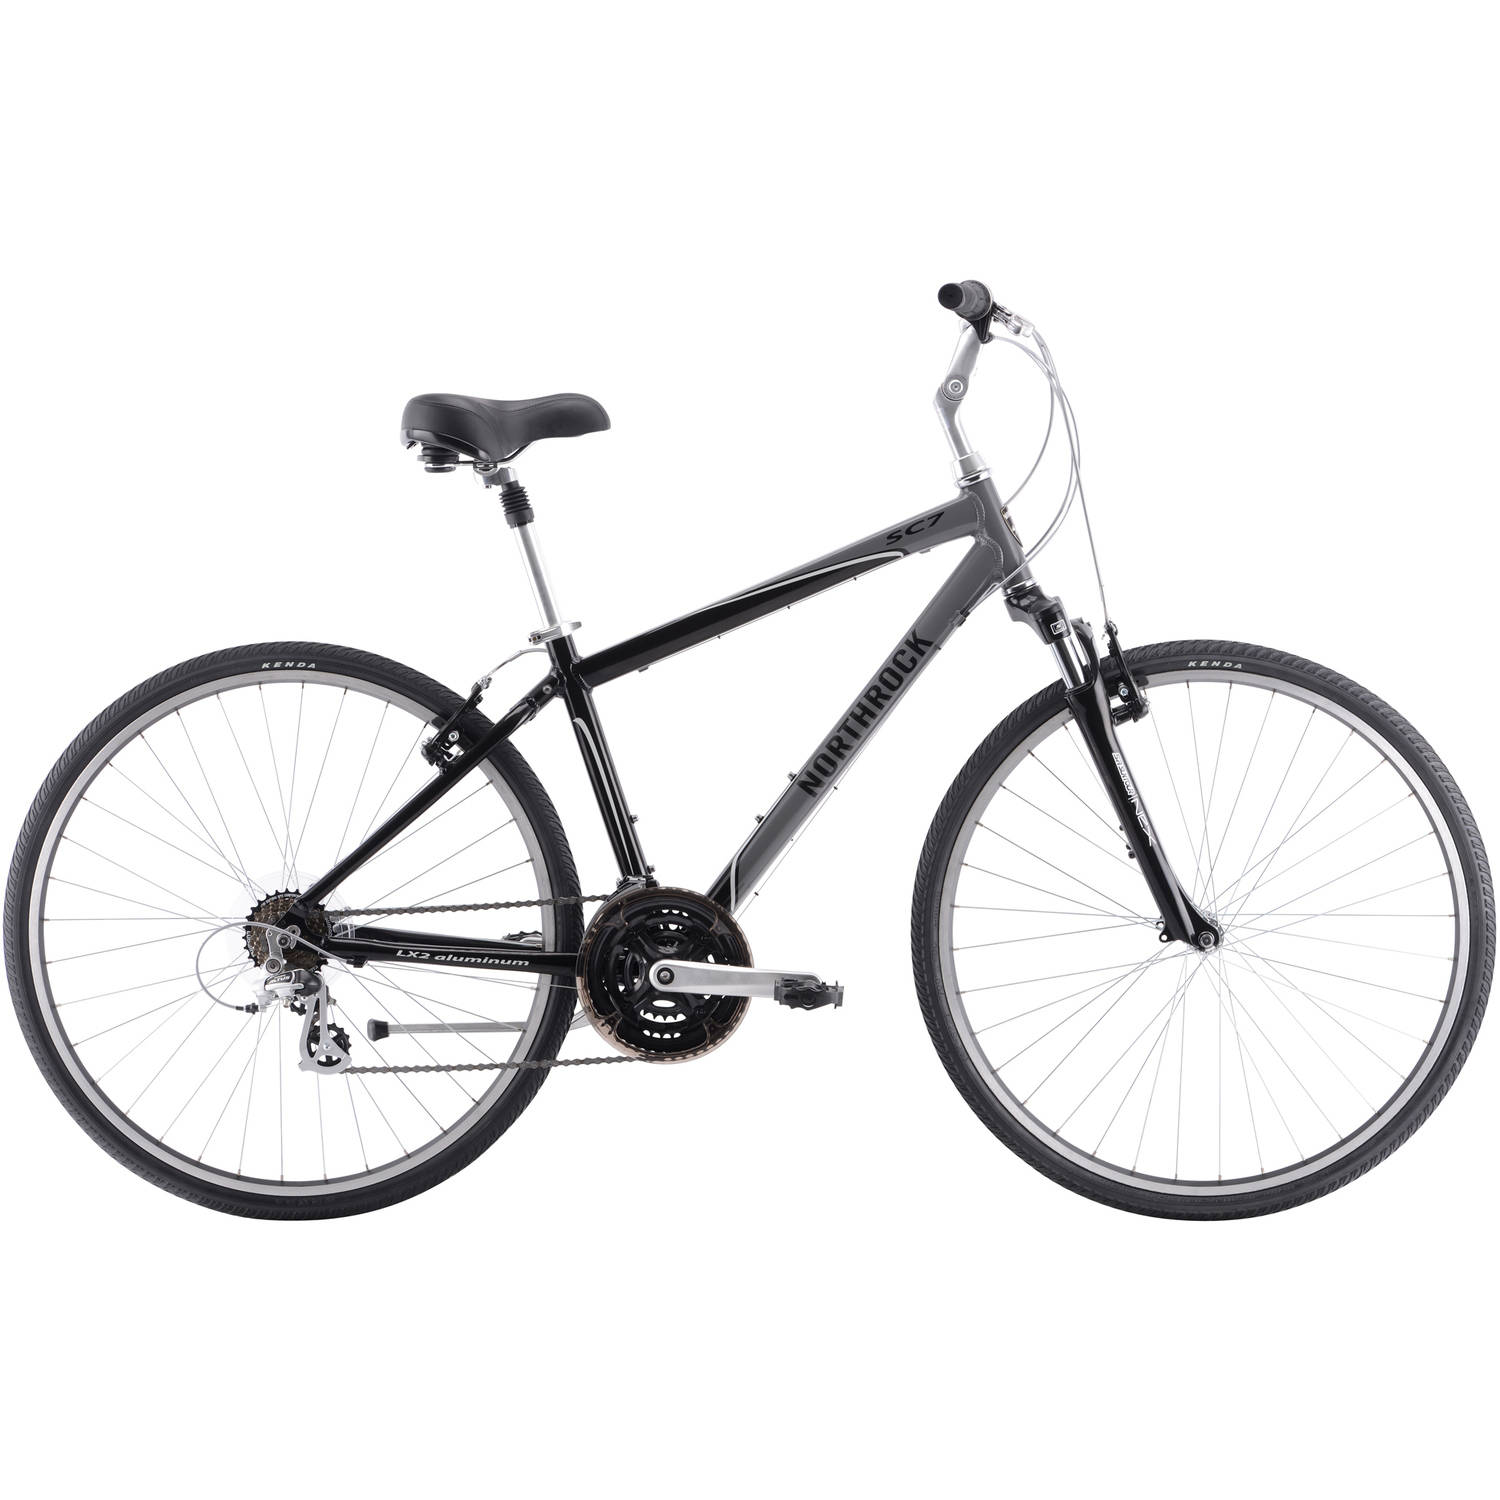 700C Northrock SC7 Men's Comfort Bike, Metallic Black